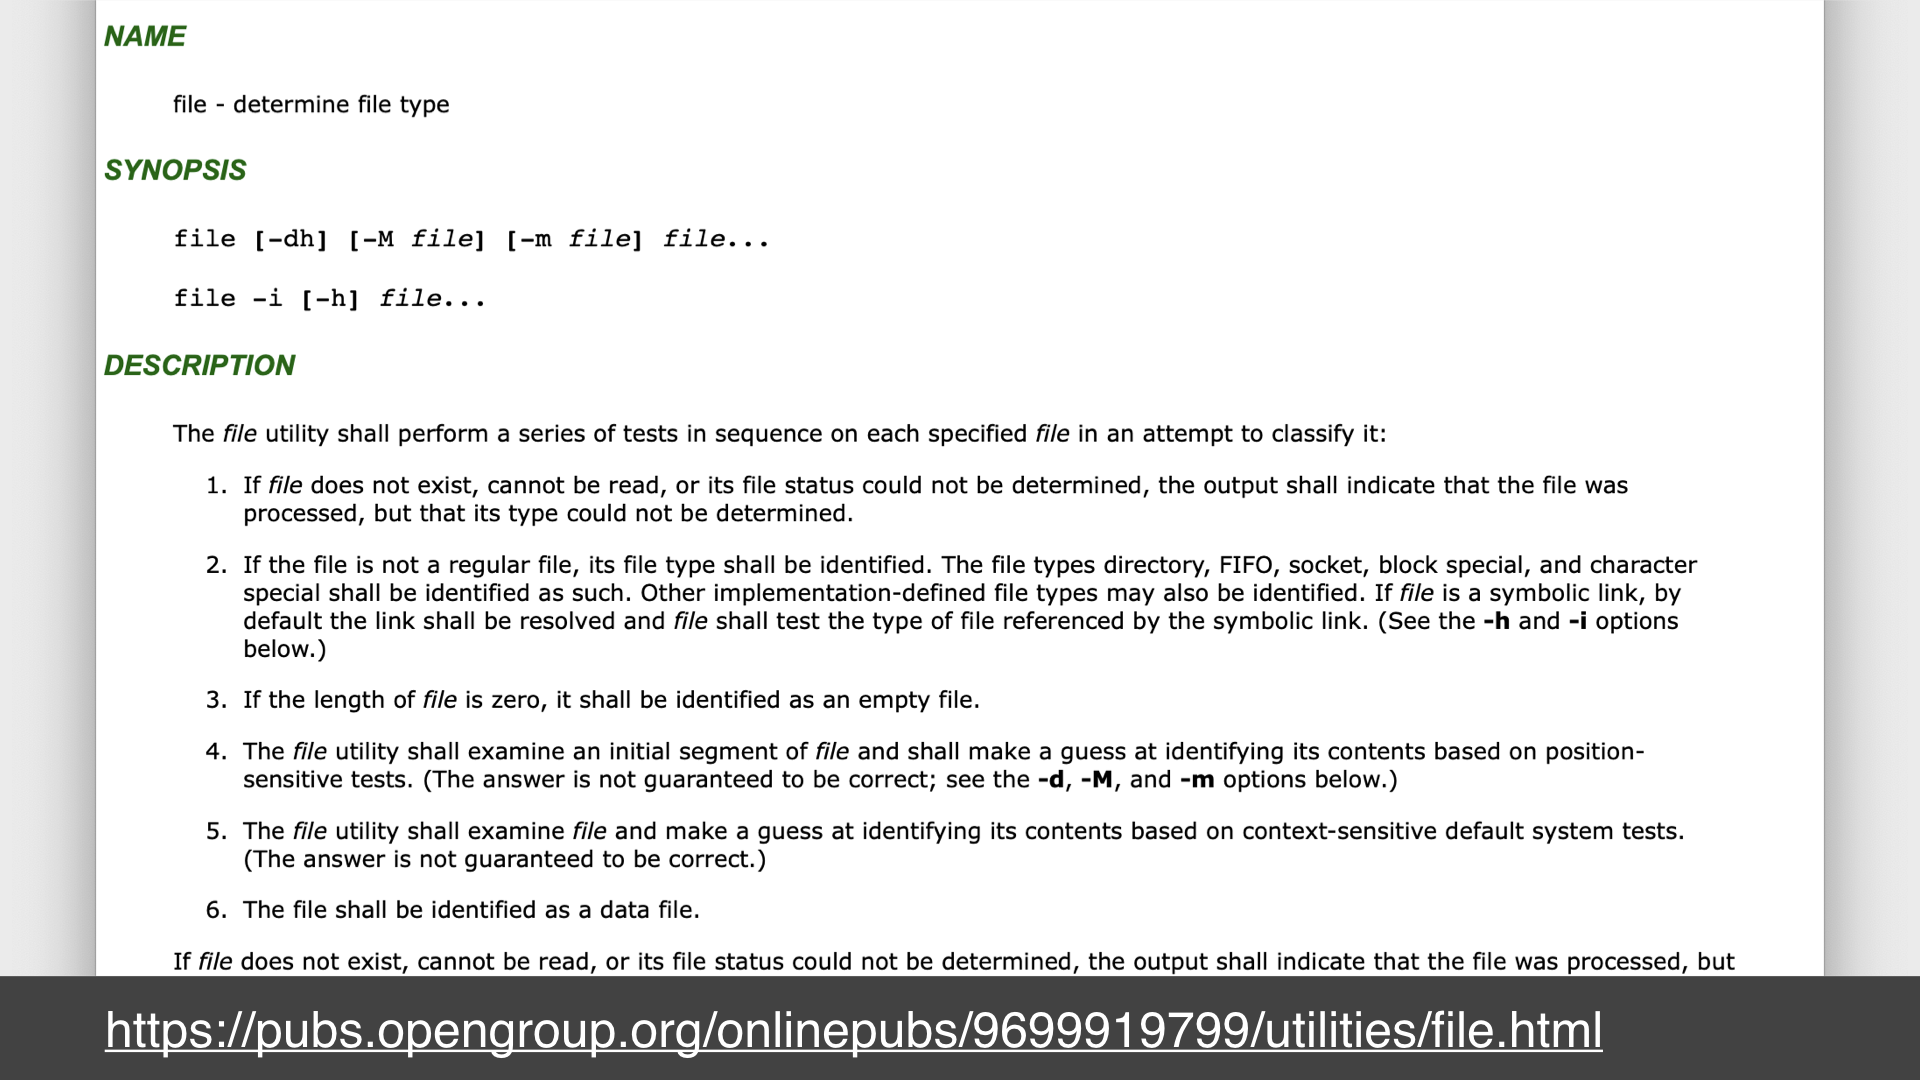 Screenshot of a webpage of the man page for the unix `file` command; url: https://pubs.opengroup.org/onlinepubs/9699919799/utilities/file.html